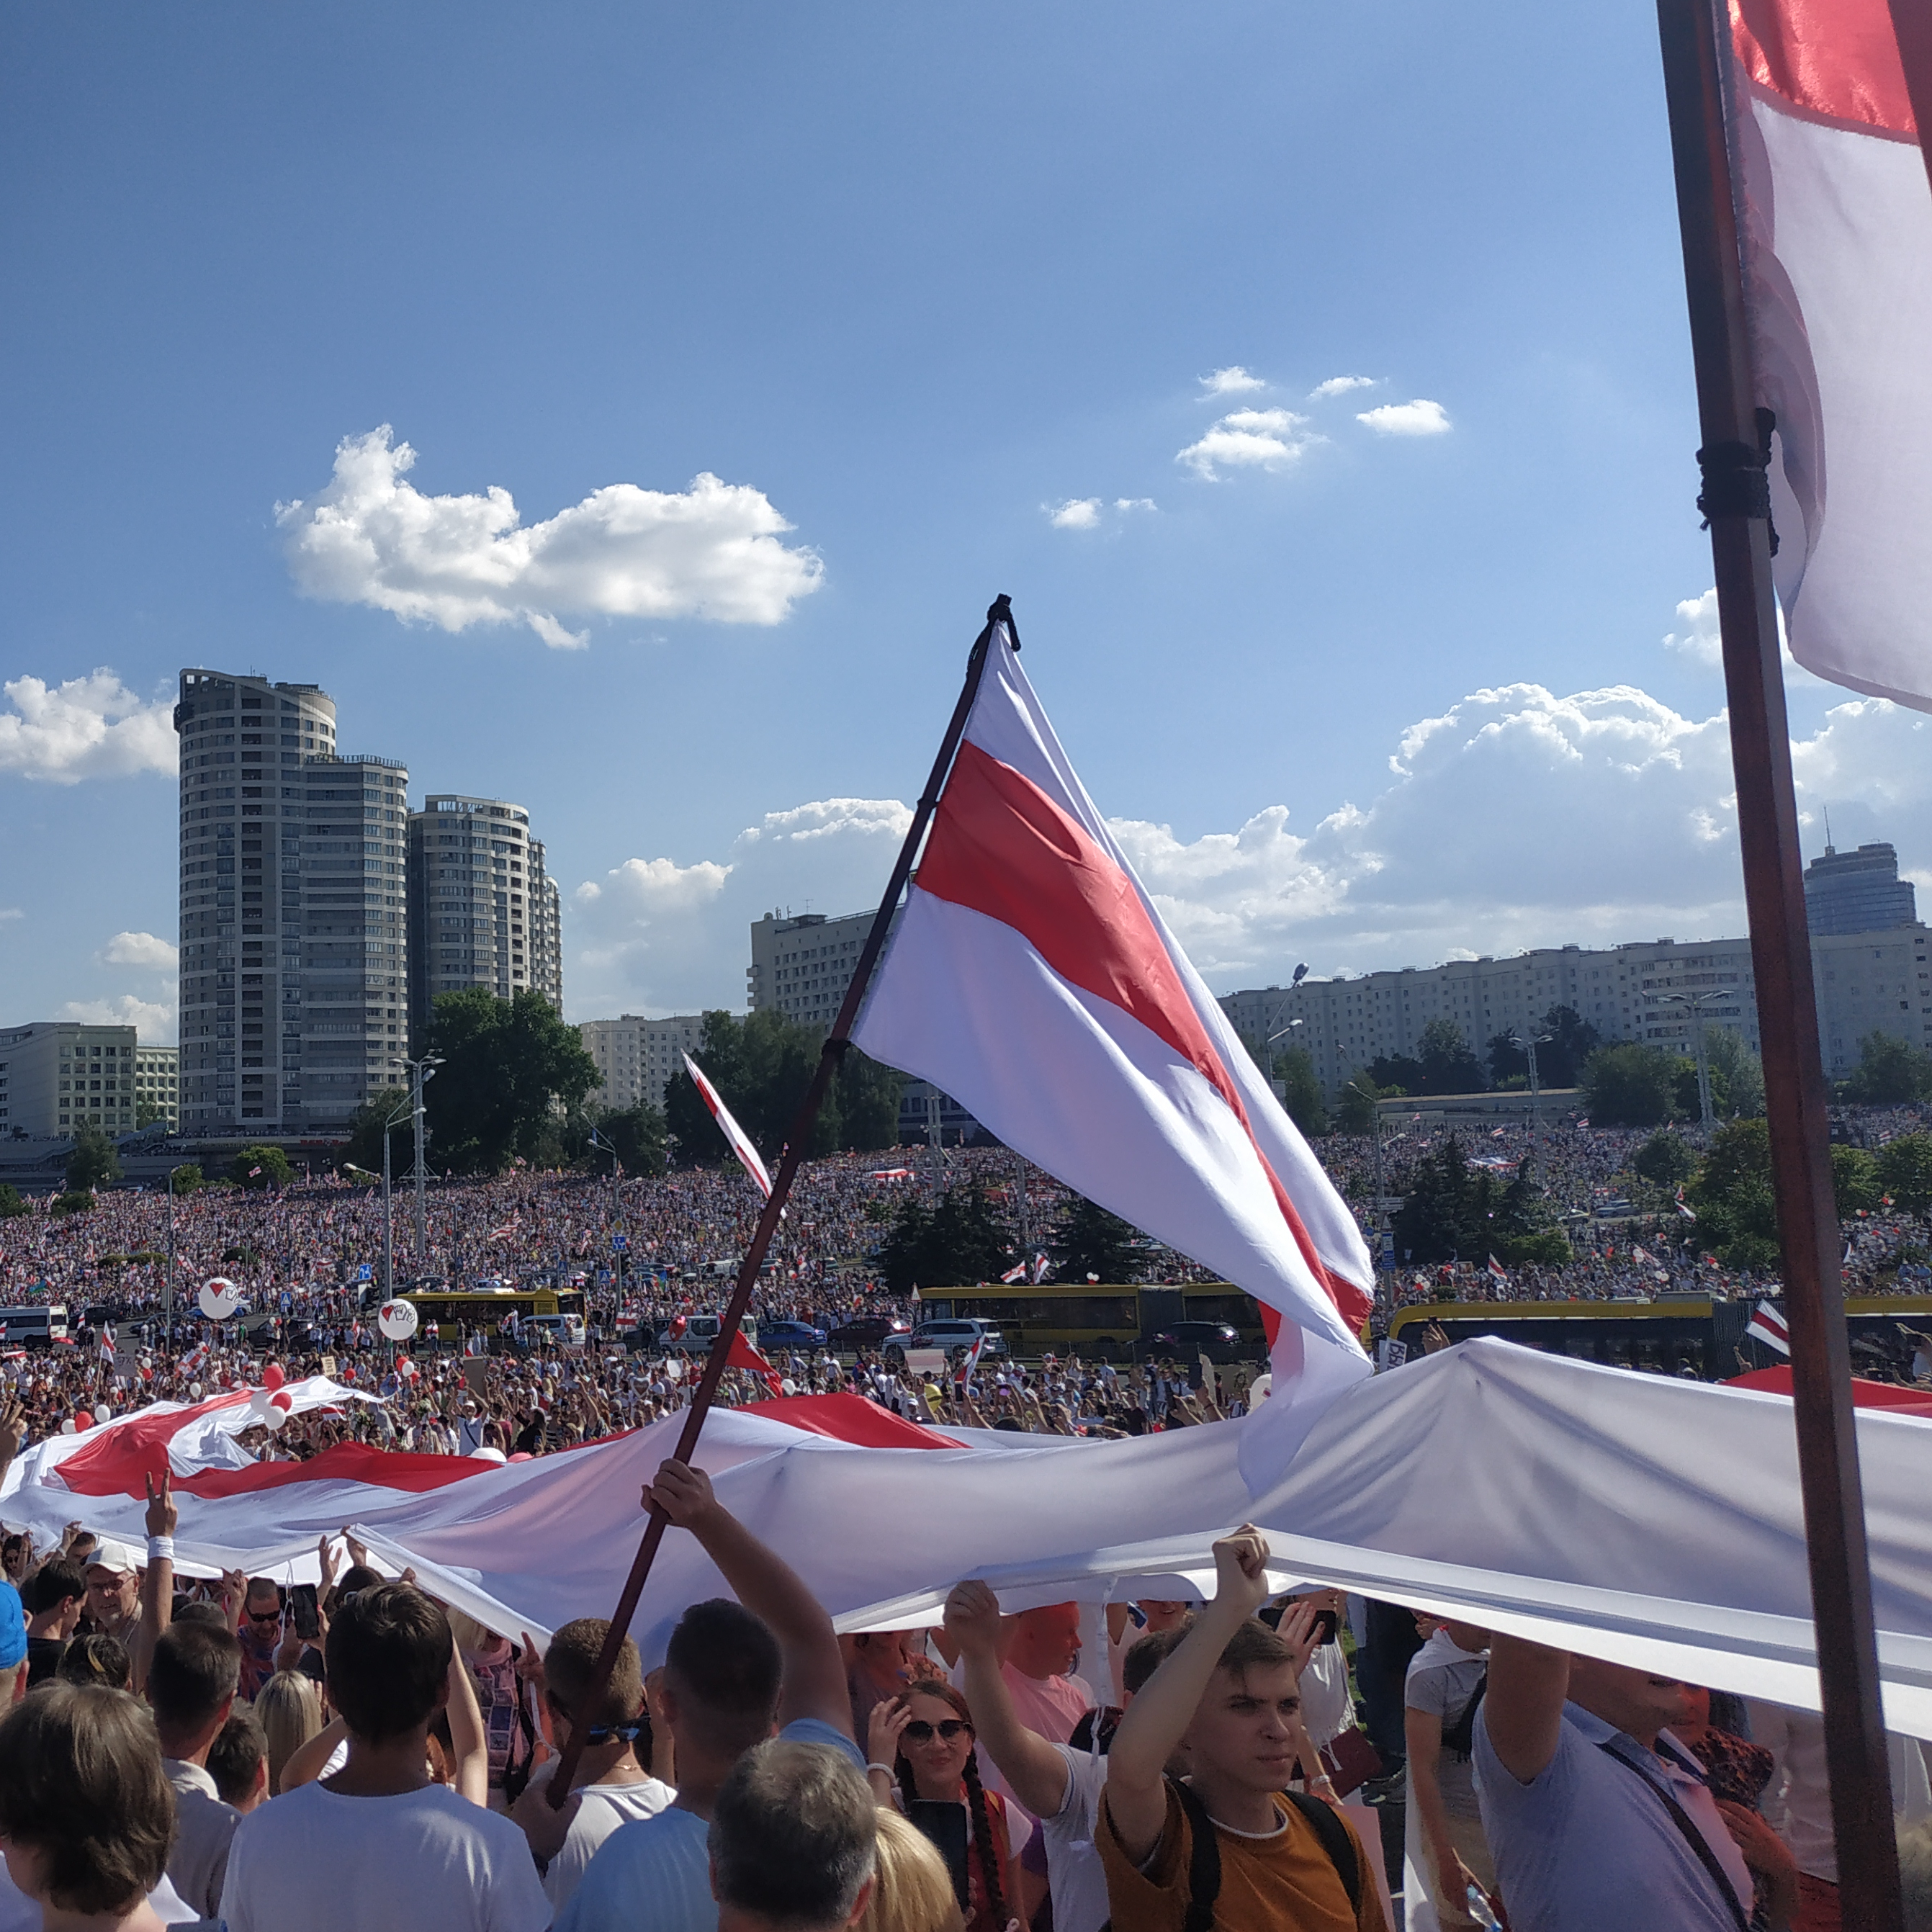 protest_actions_in_minsk_belarus_near_stella_august_16-2